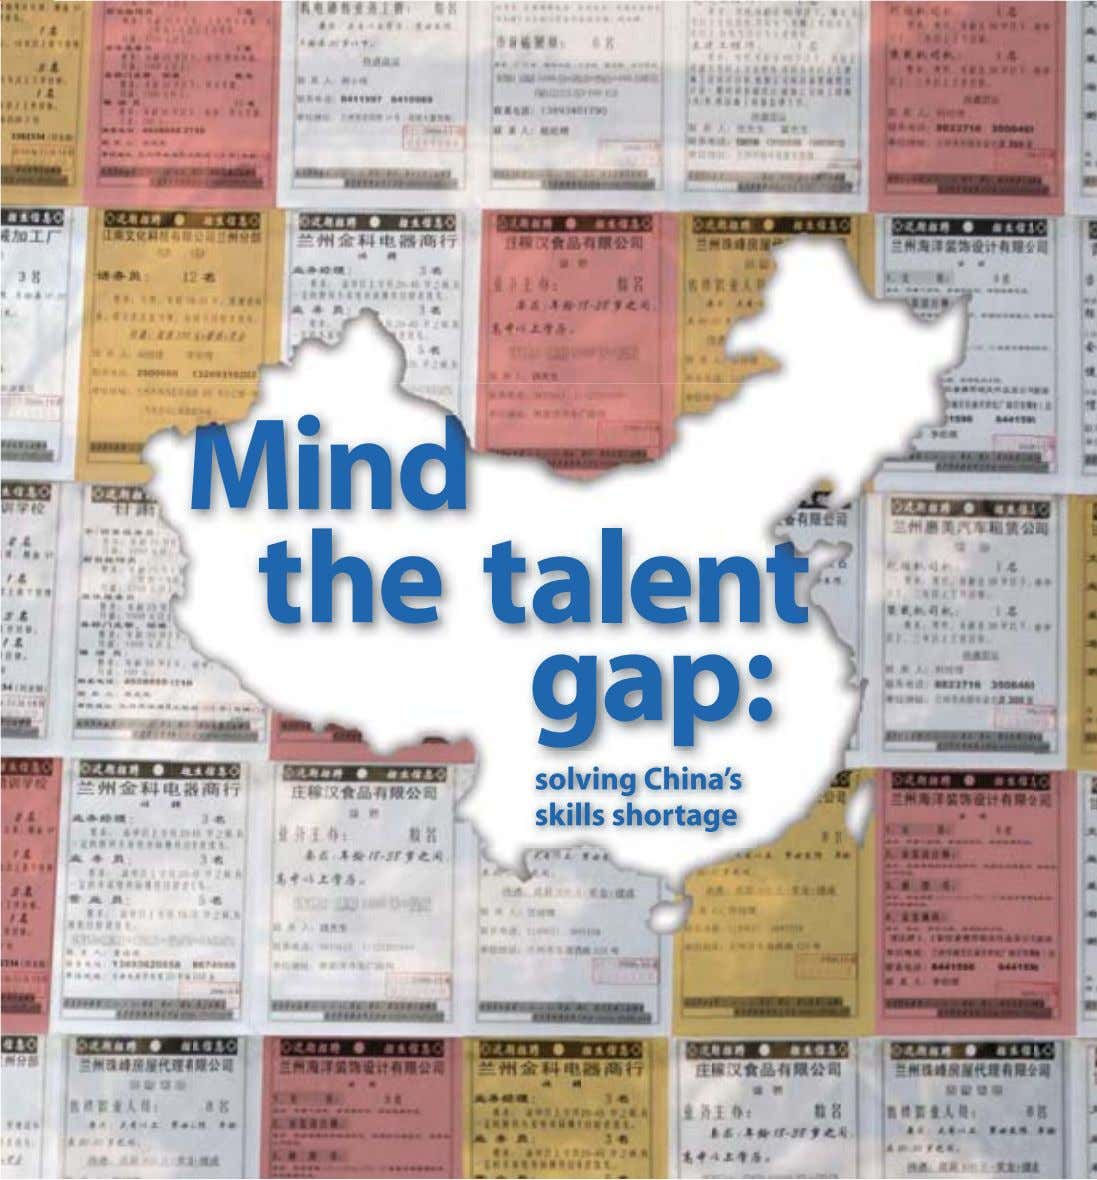 Mind the talent gap: solving China's skills shortage